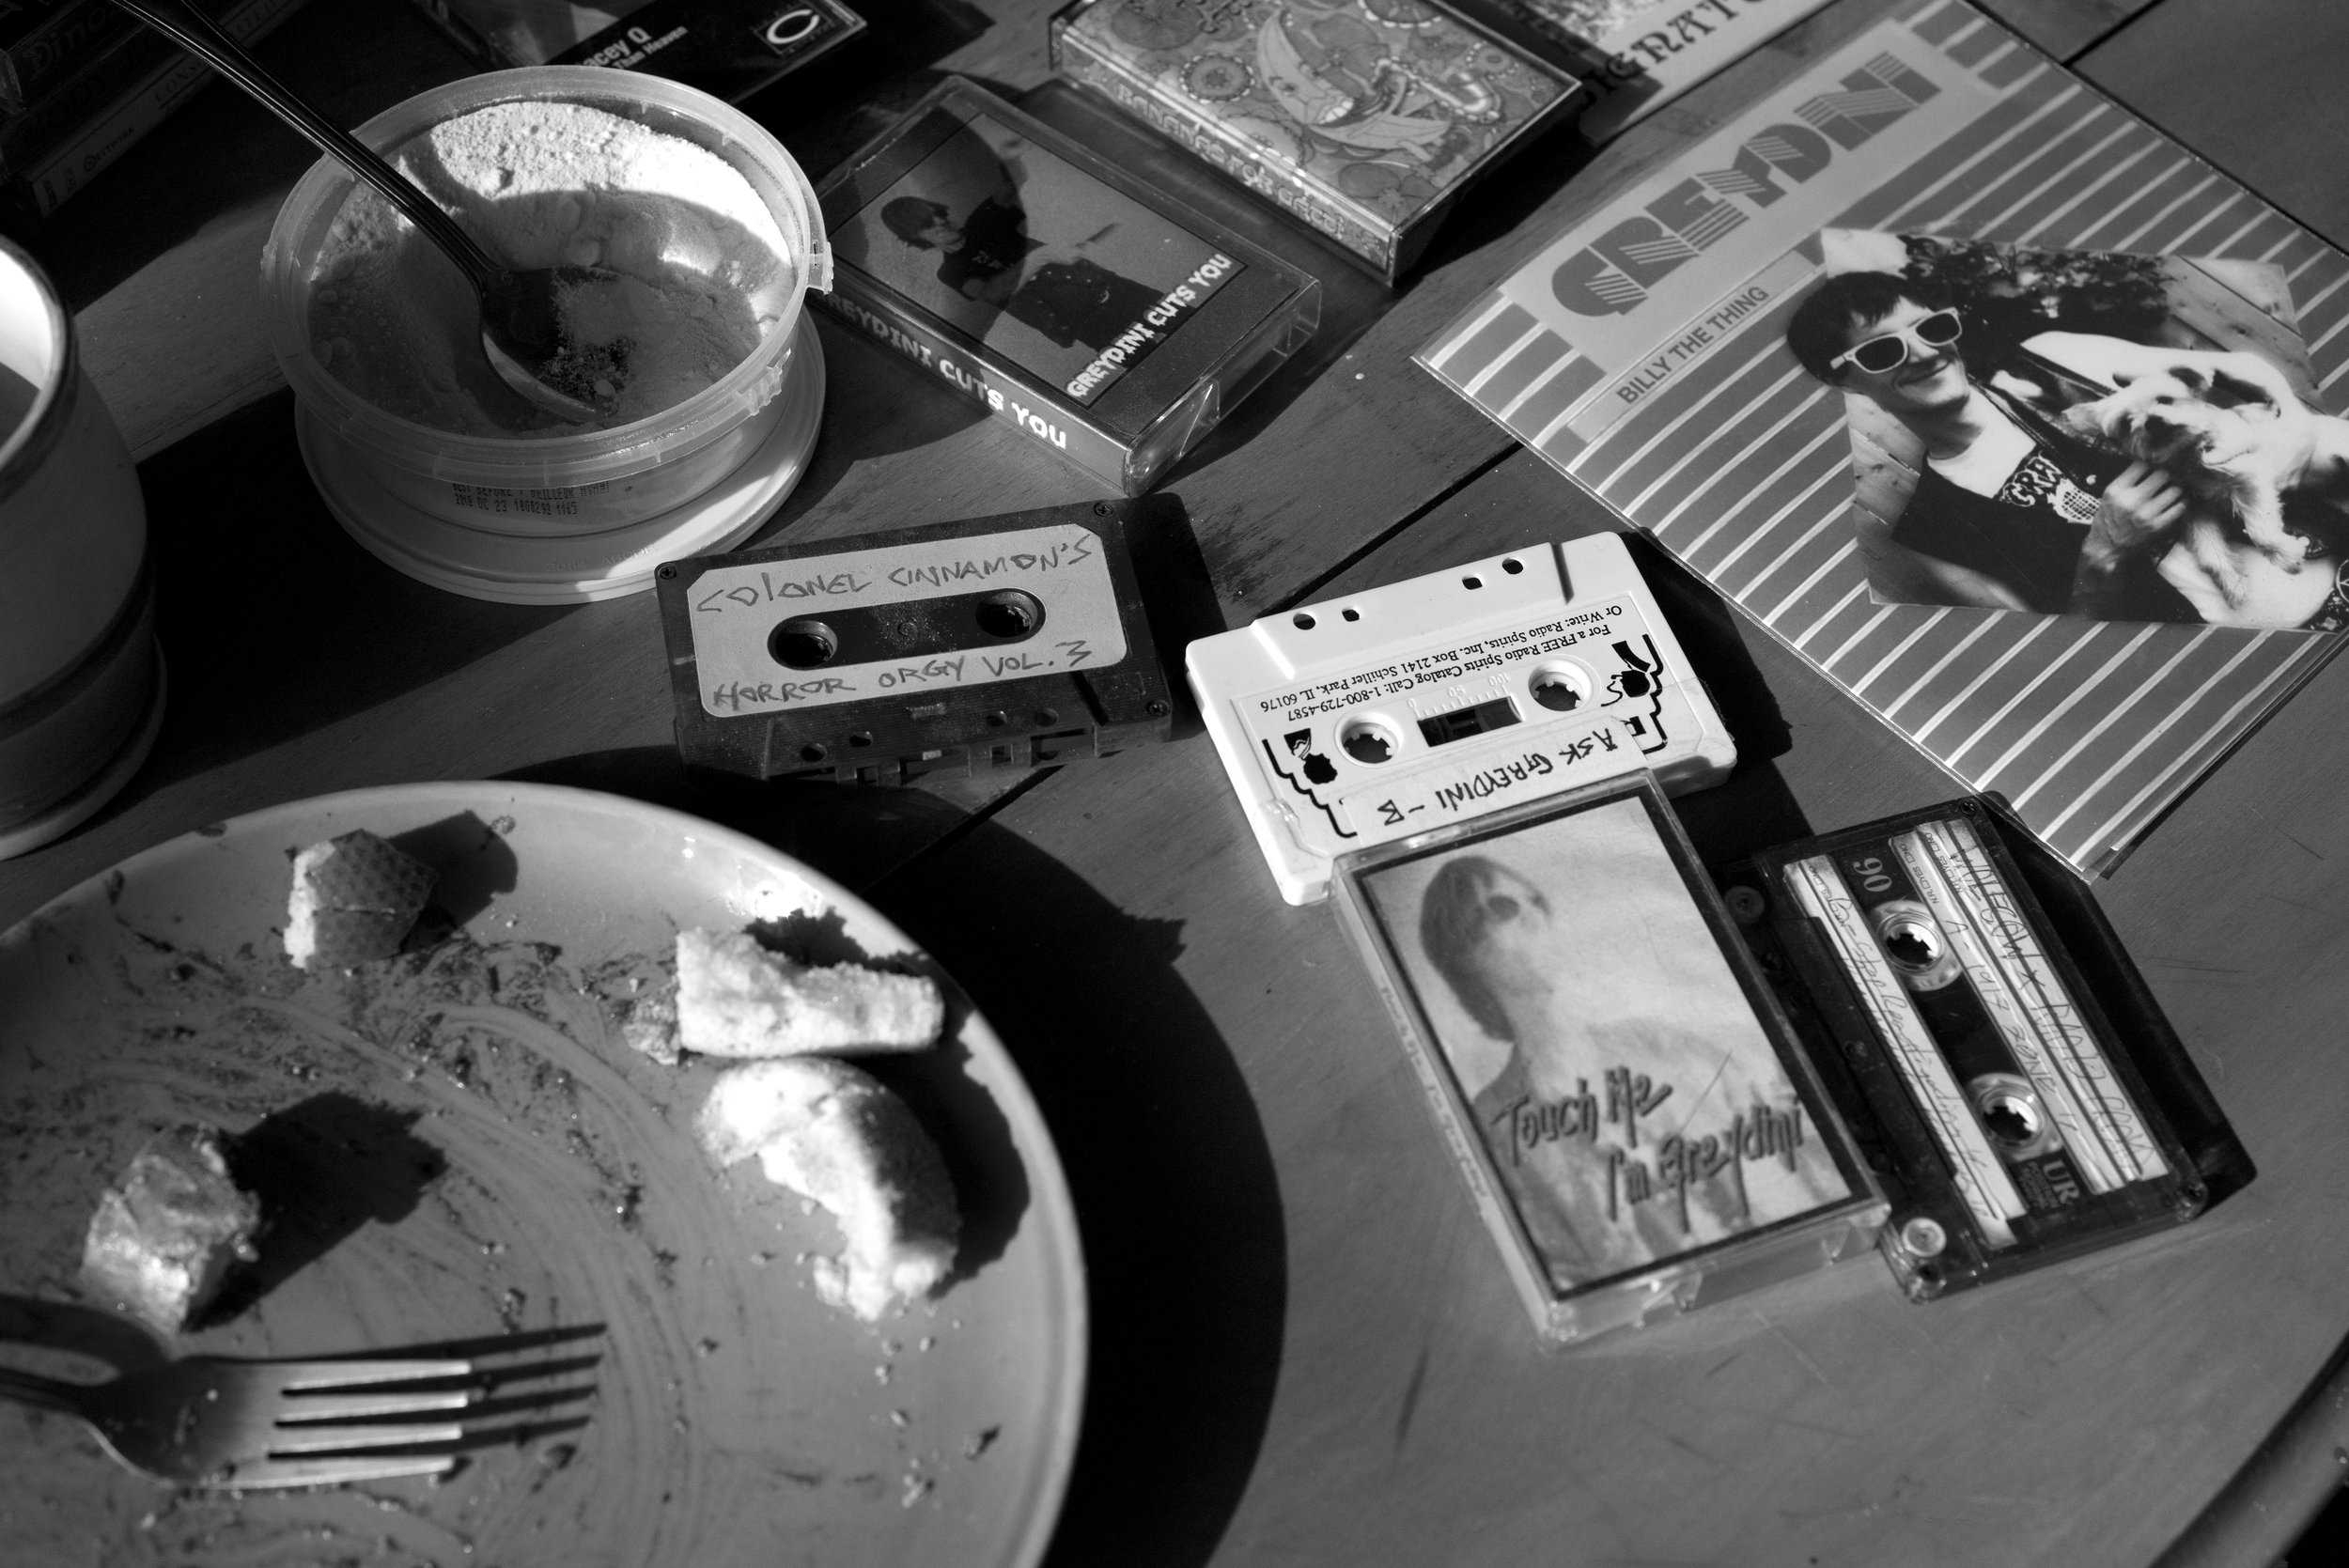 Empty plate beside some cassette tapes